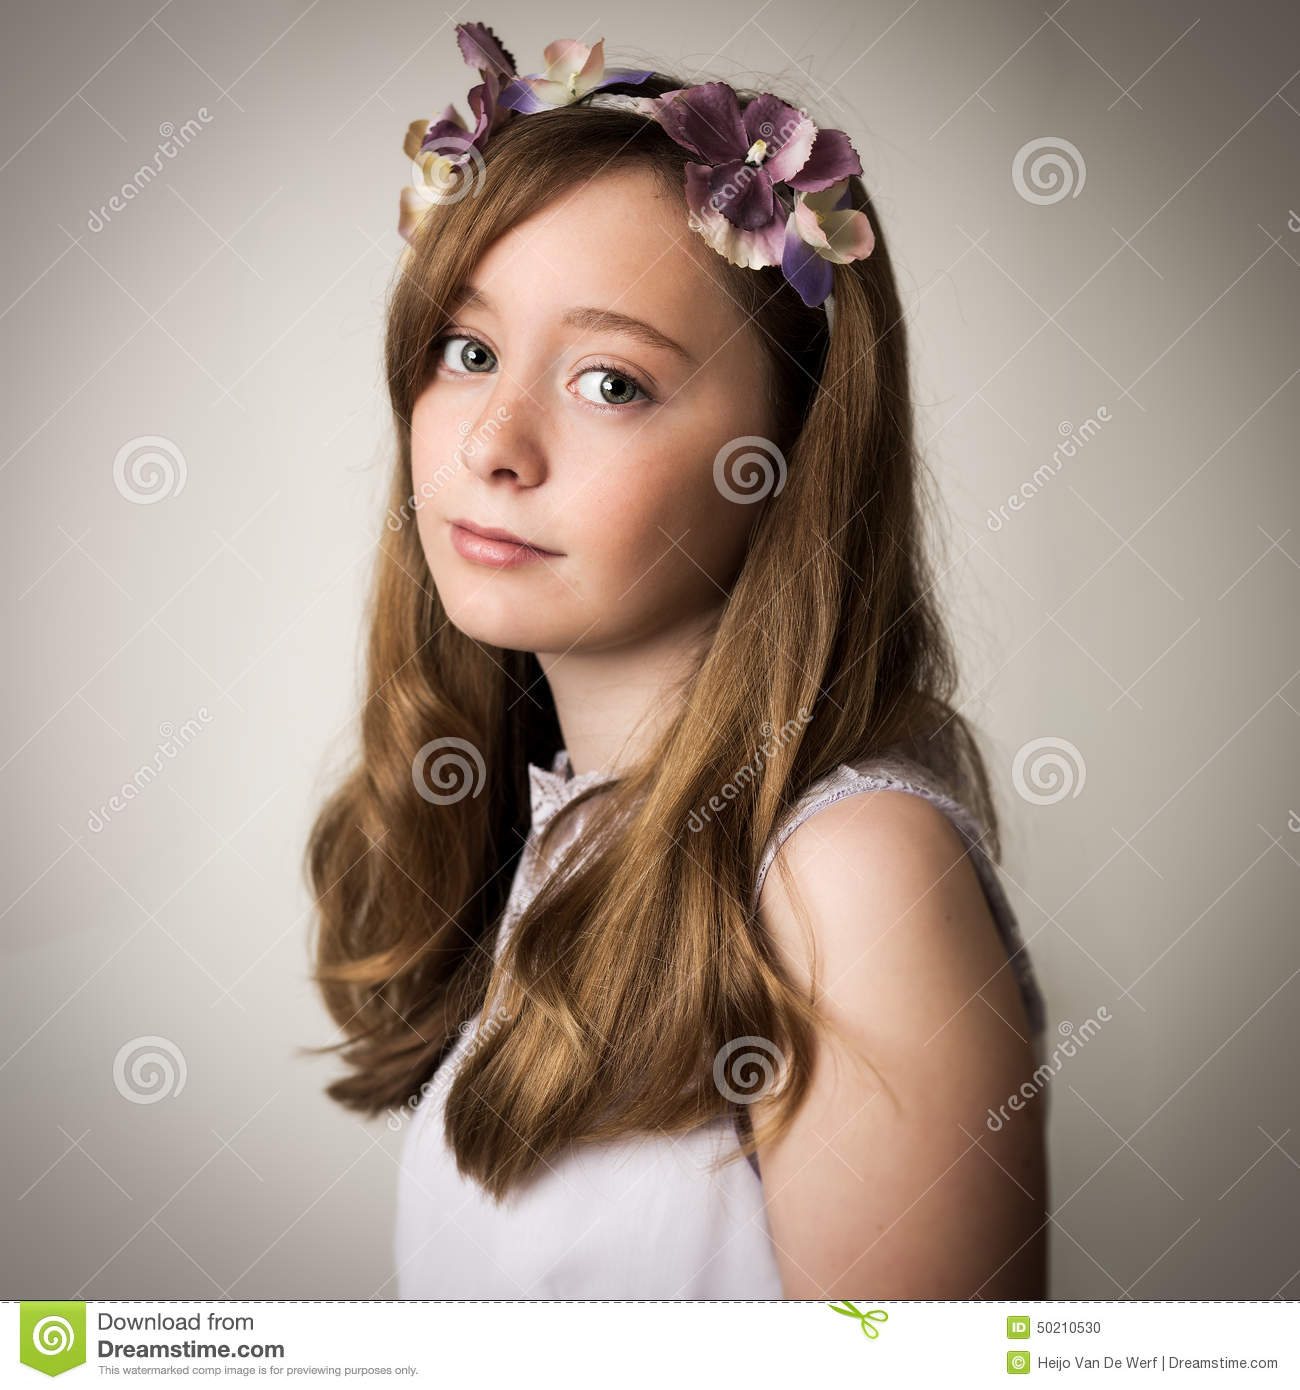 Can consult Redhead teen tiara very pity